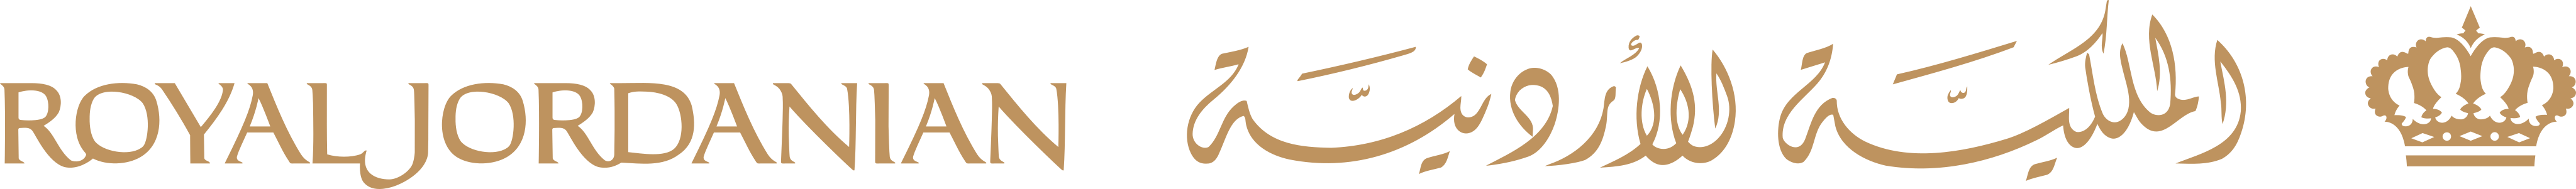 Royal Jordanian Airlines Logo.